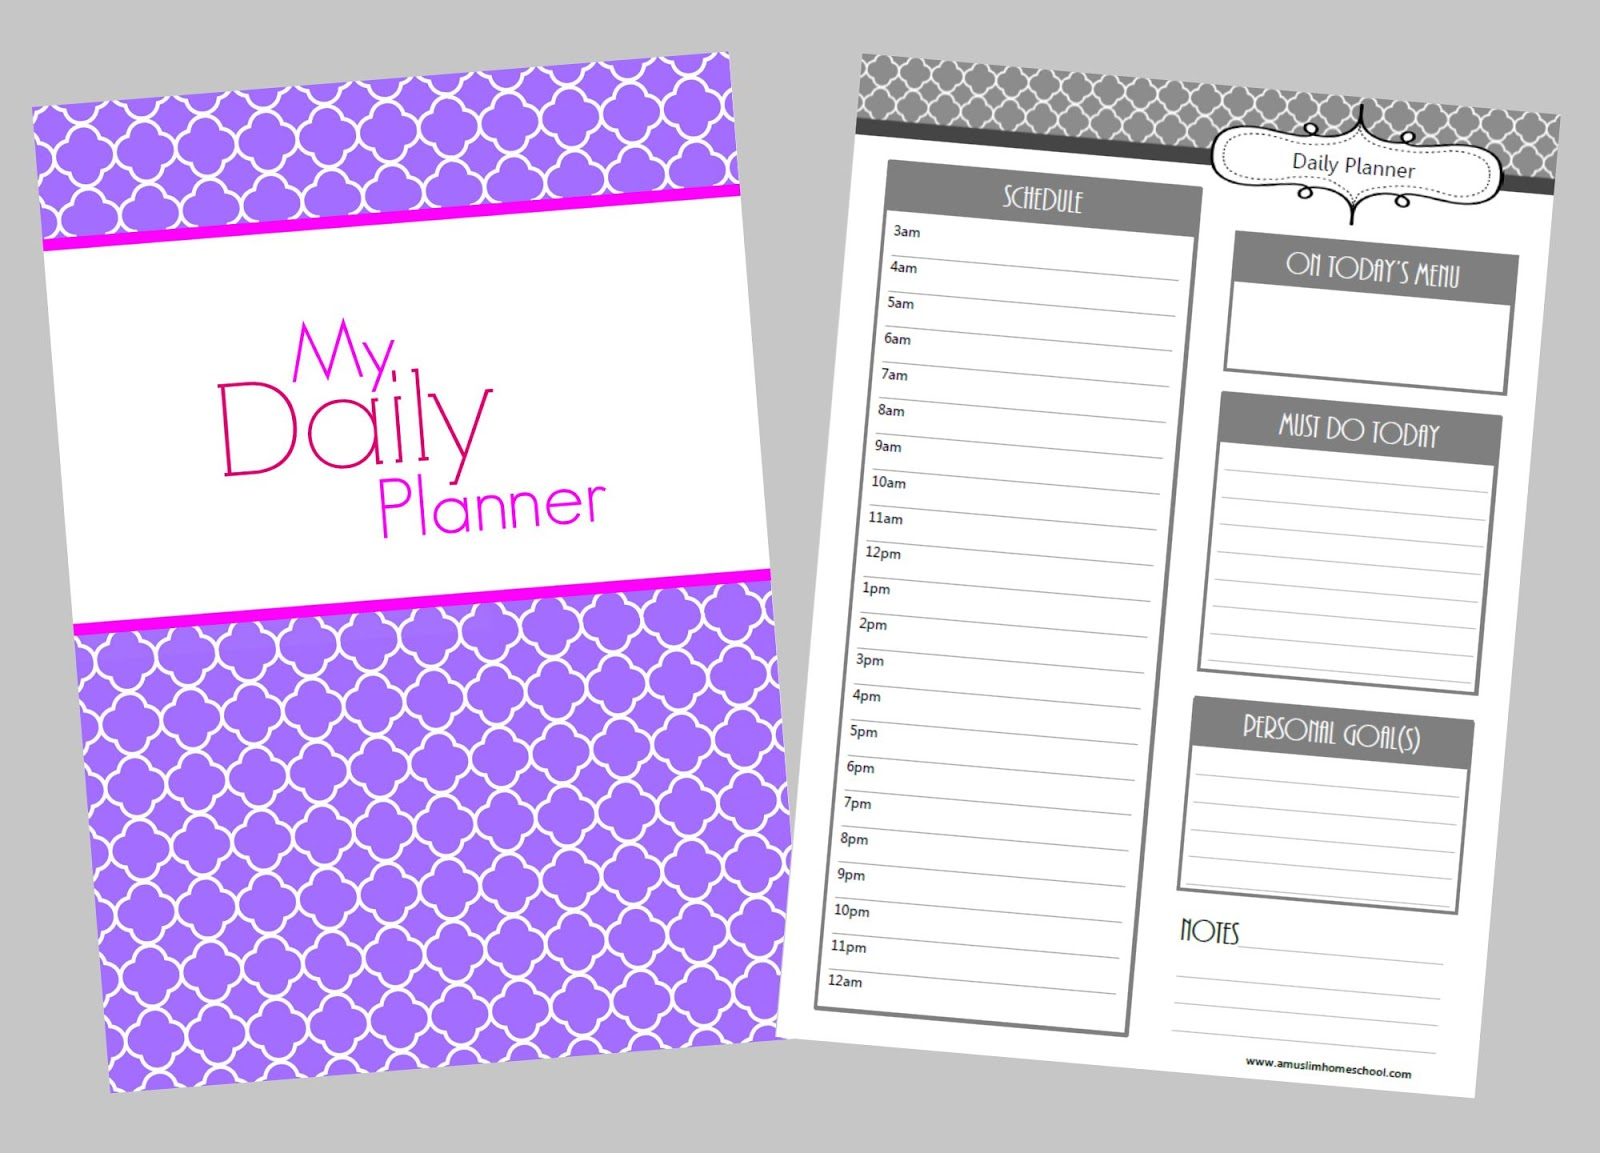 Daily Planner Printable - Daily Printable Schedule Template For Students and Teachers